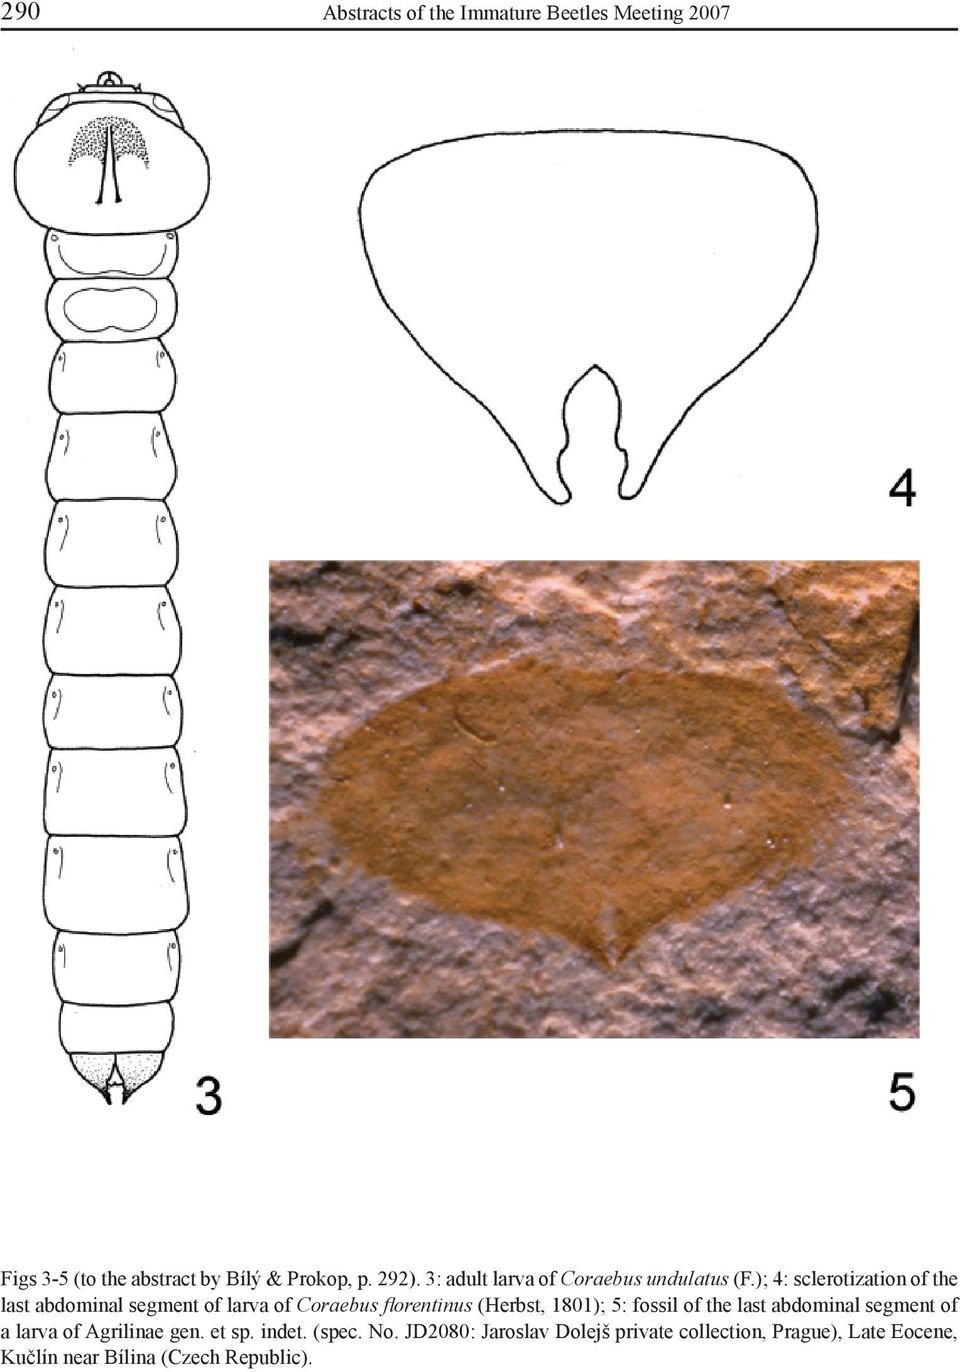 1801); 5: fossil of the last abdominal segment of a larva of Agrilinae gen. et sp. indet. (spec.